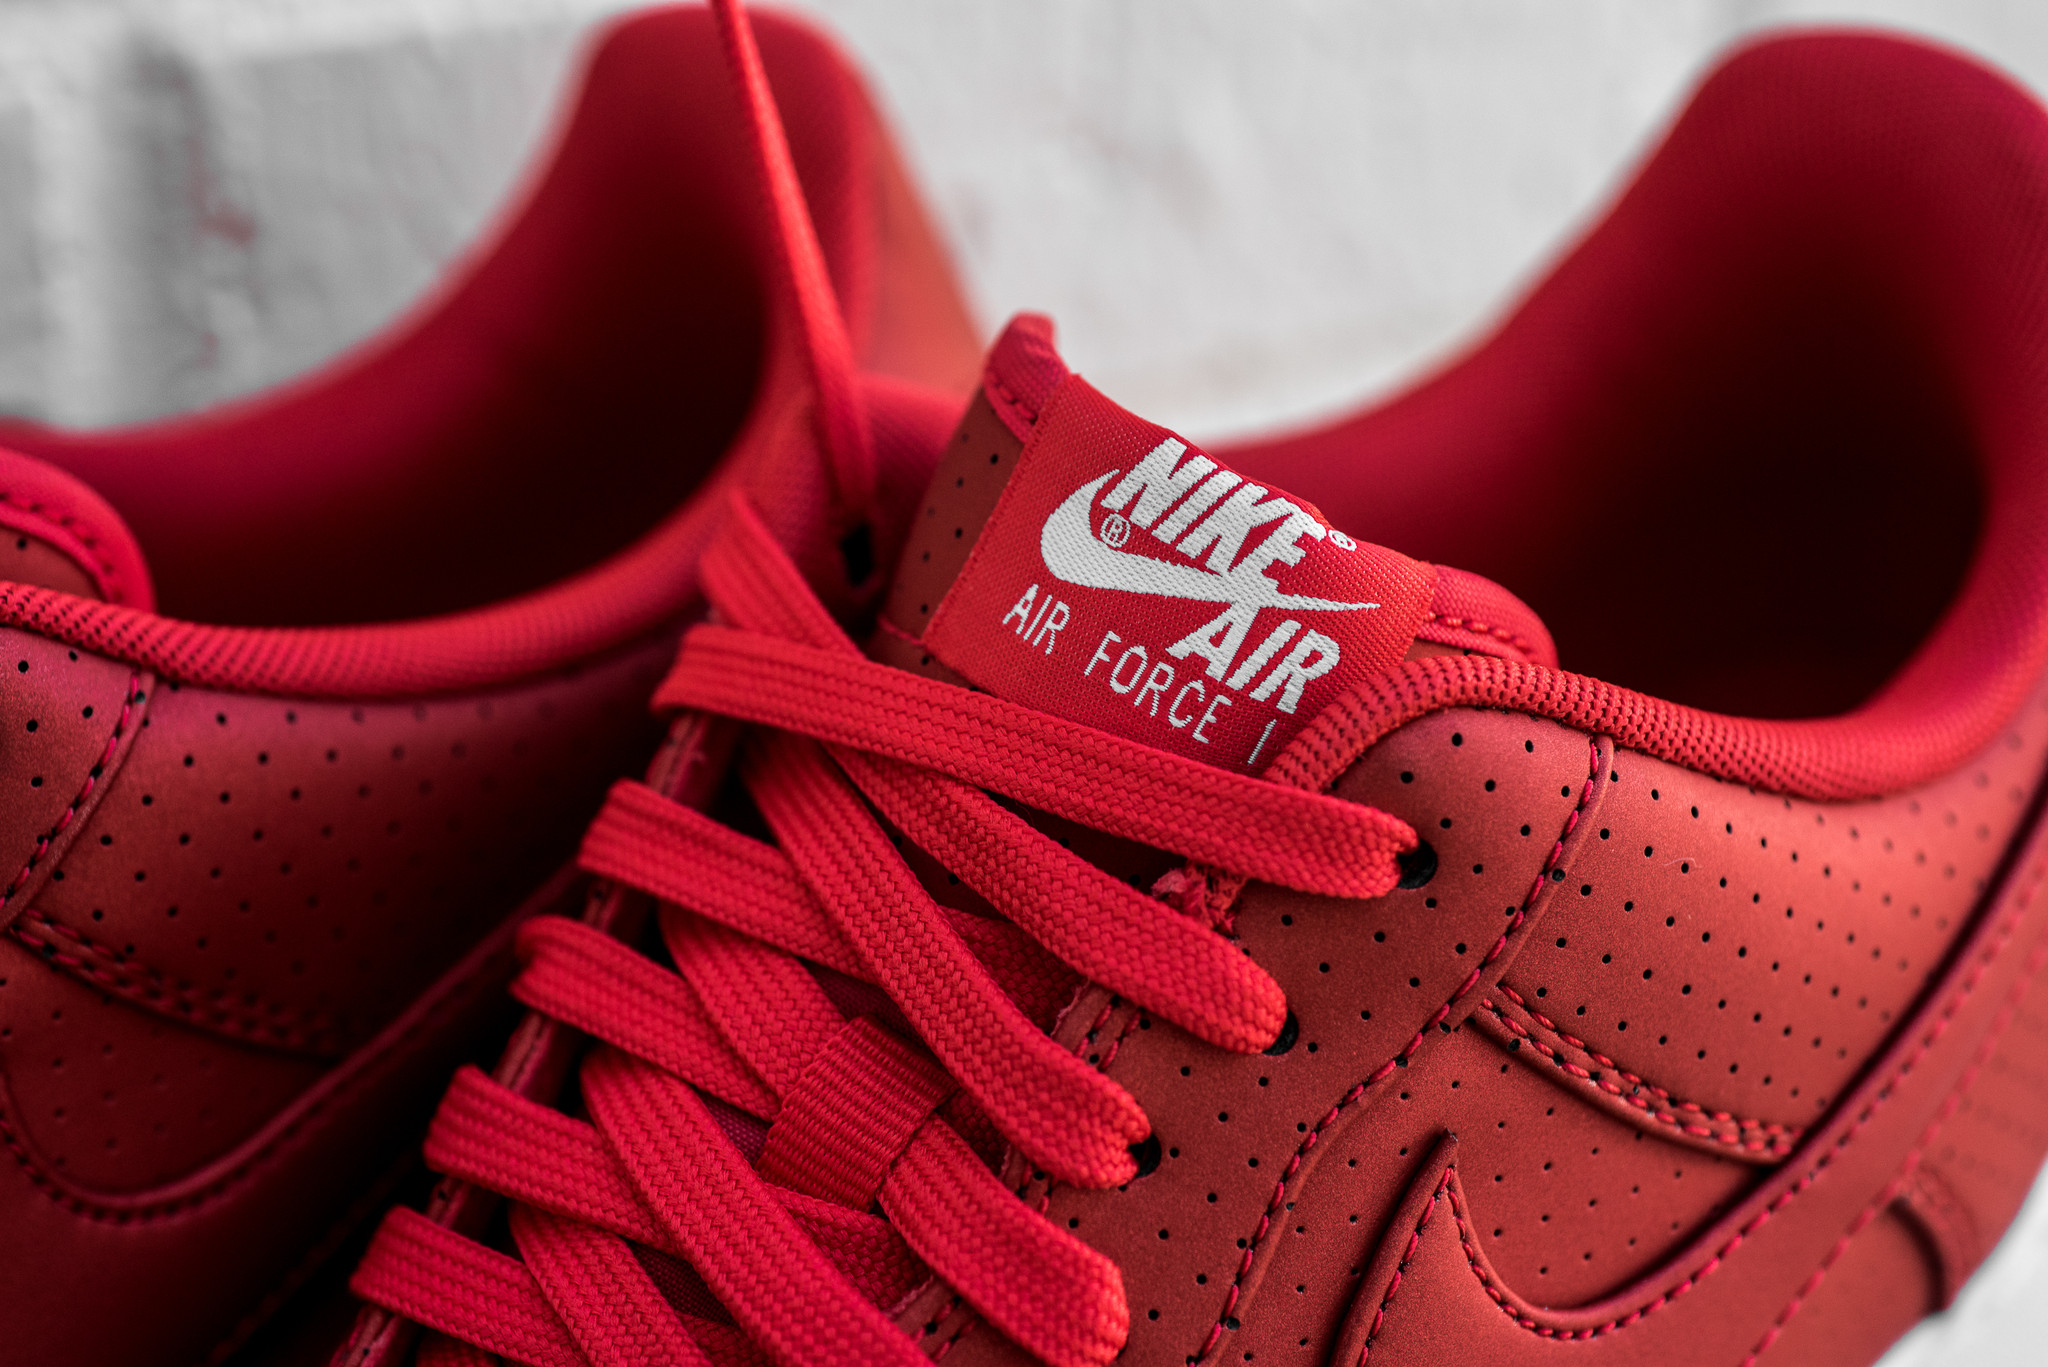 A Perforated Nike Air Force 1 Low Just Released